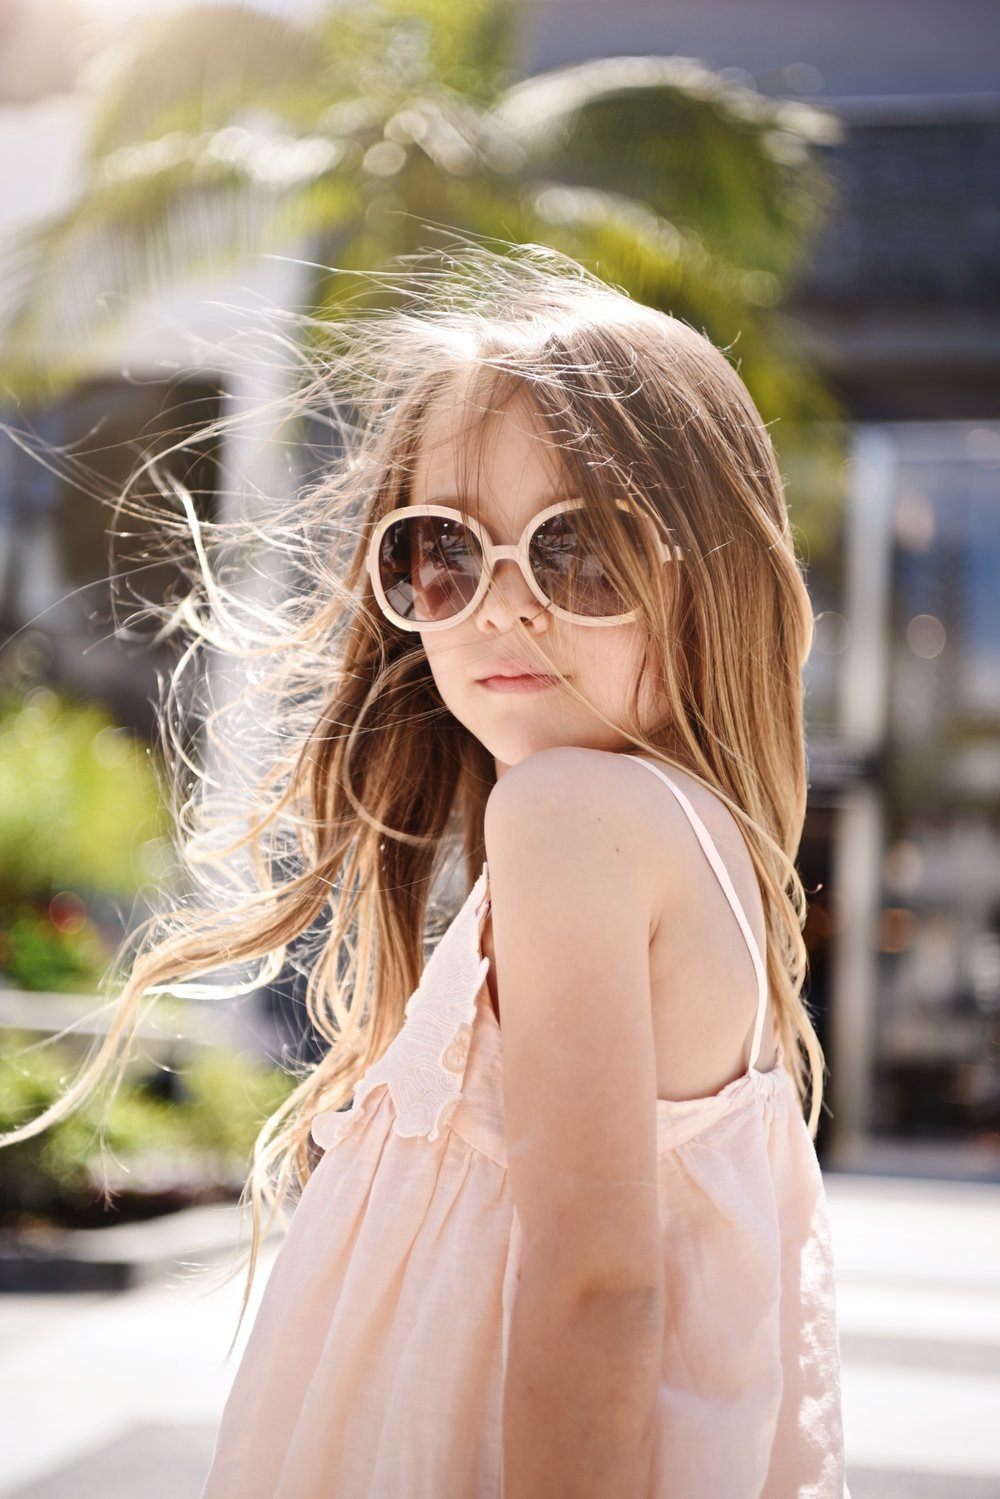 Enfant+Street+Style+by+Gina+Kim+Photography+Chloe+girls-1.jpeg